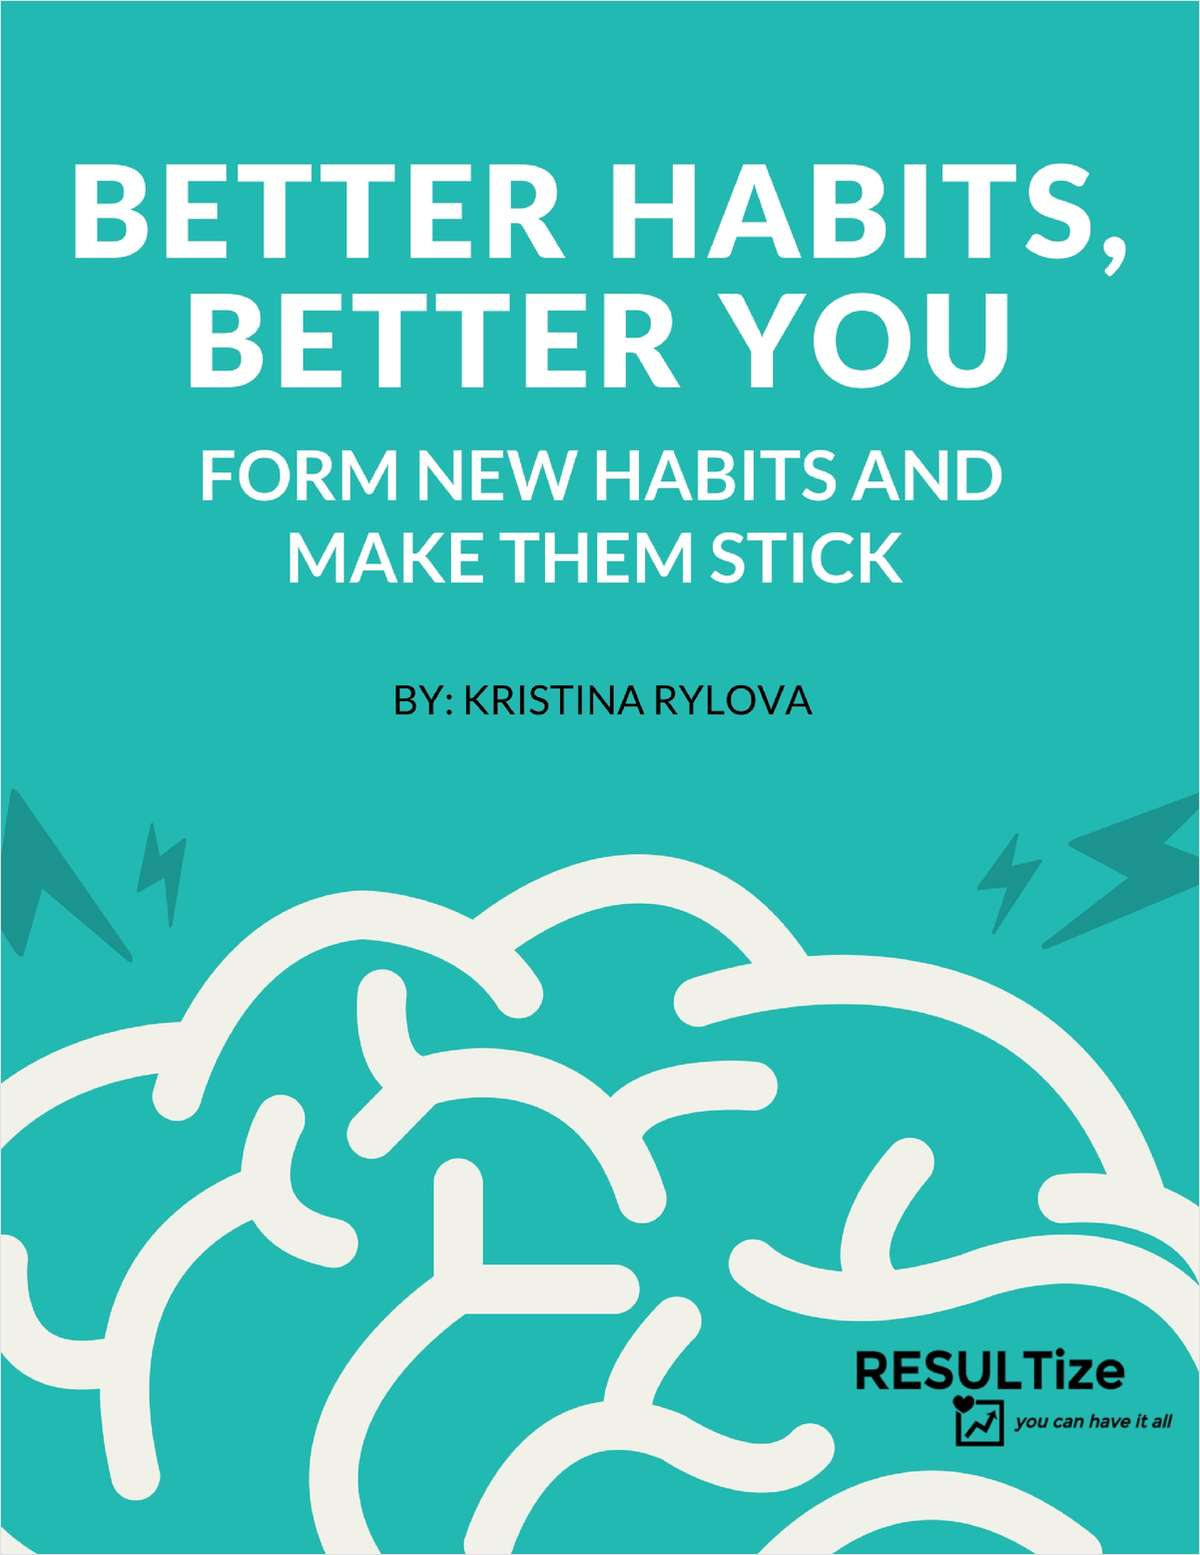 Better Habits, Better You - Form New Habits and Make Them Stick